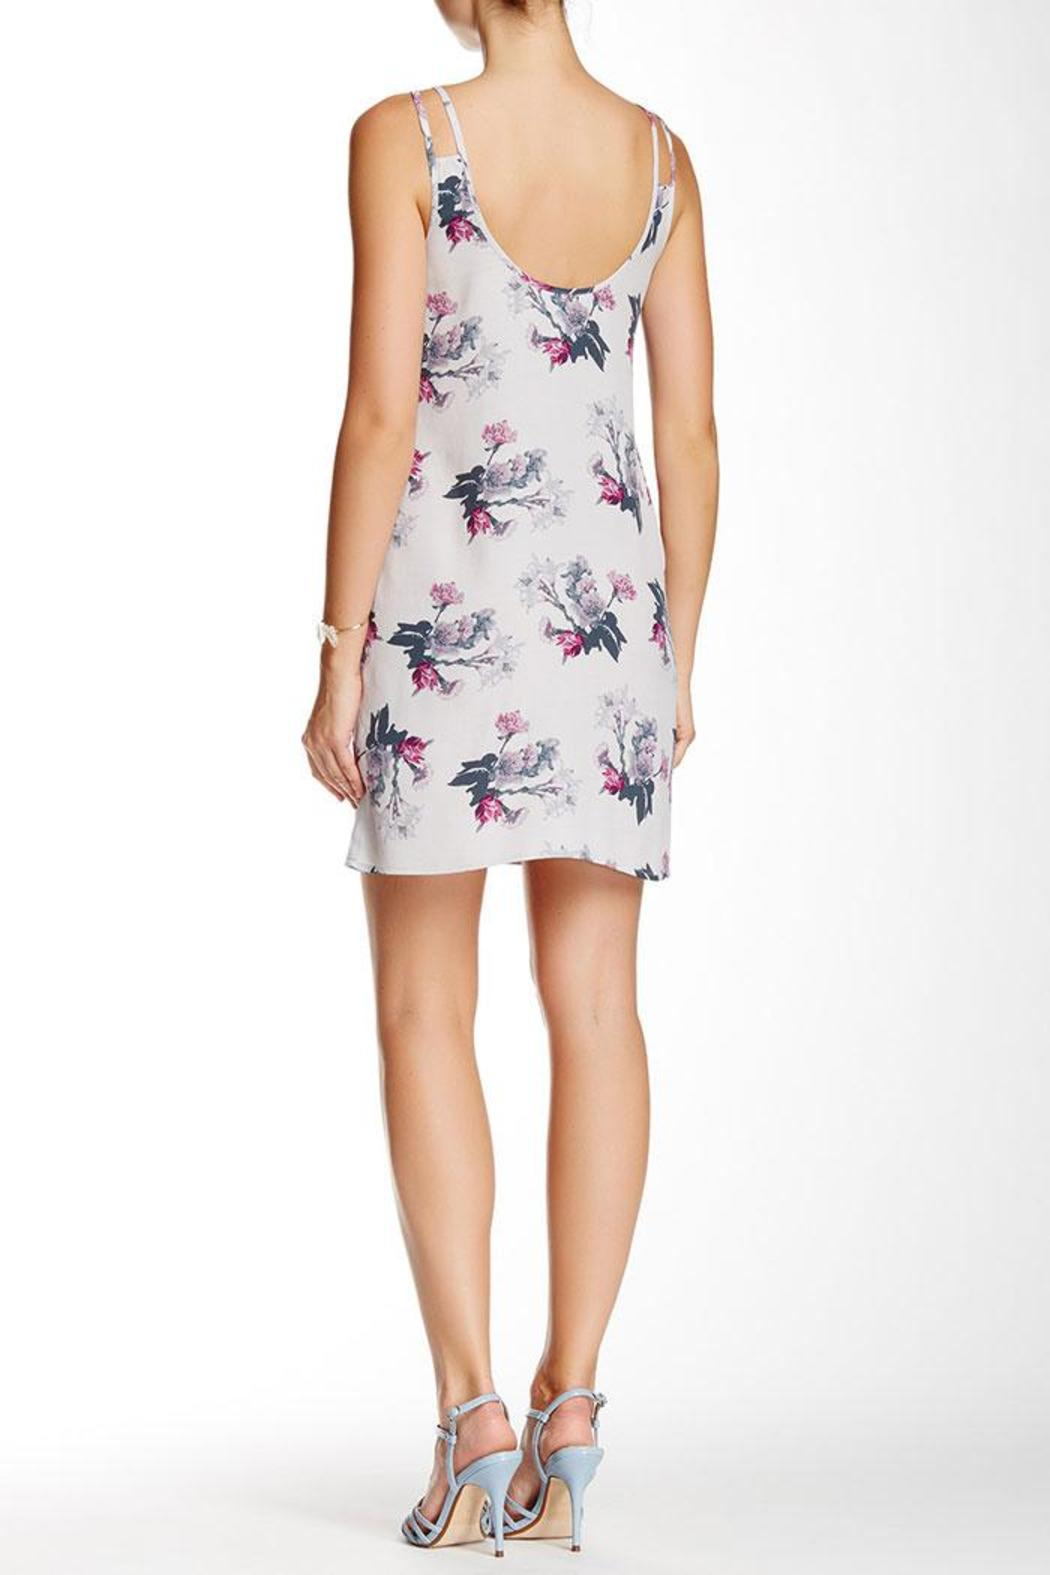 BB Dakota Floral Grey Dress - Front Full Image